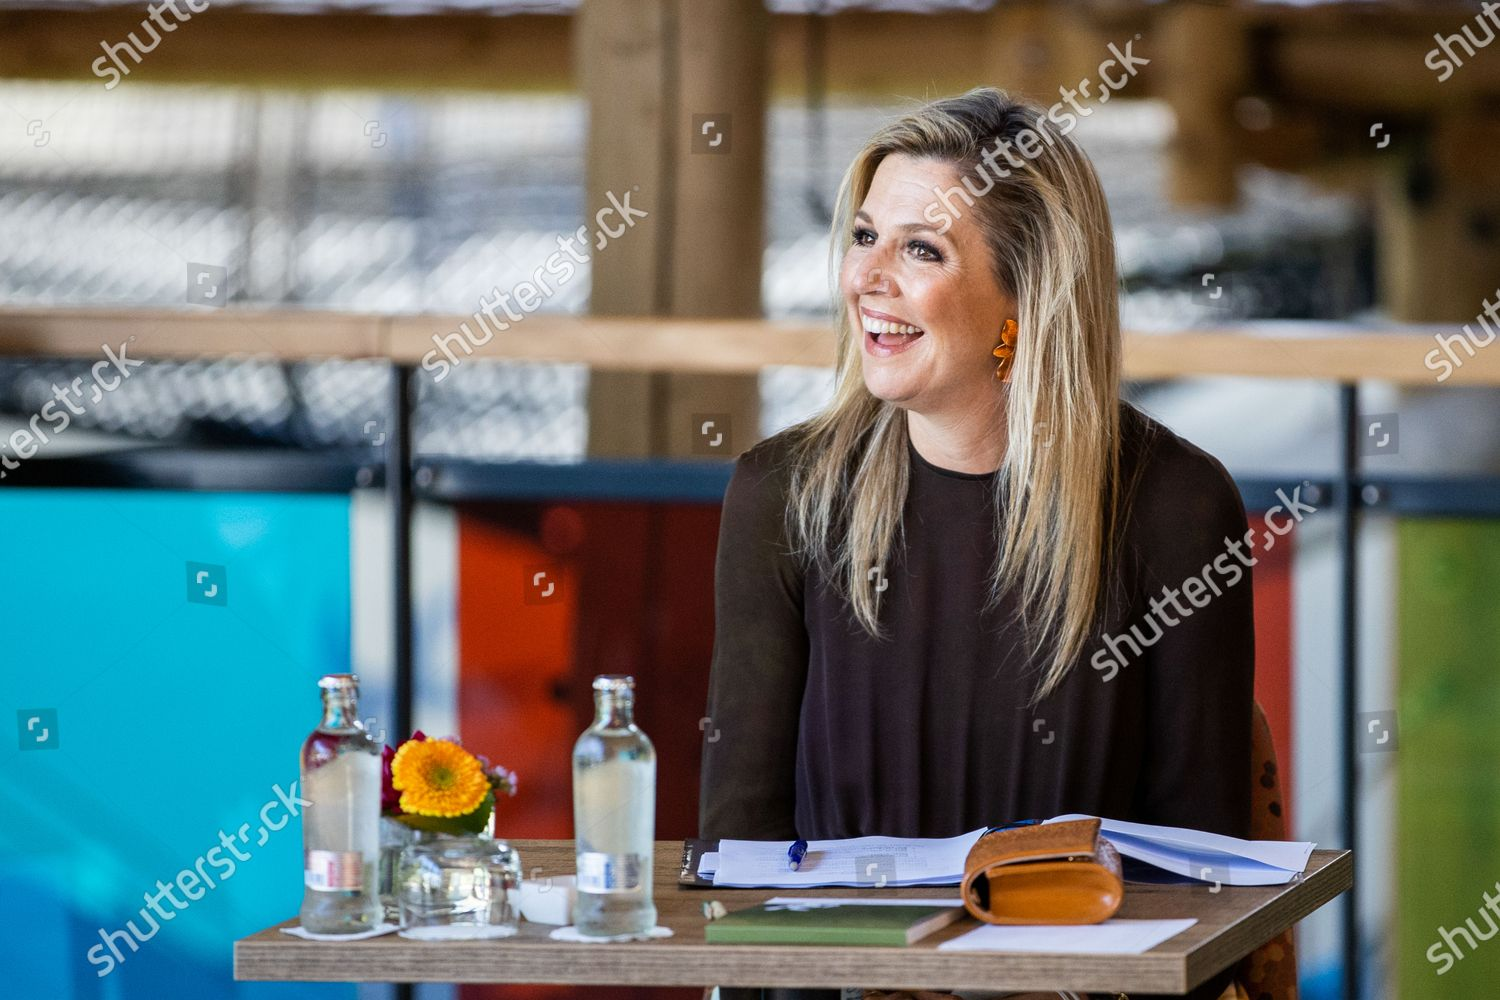 queen-maxima-visits-the-zwolle-region-to-discuss-developments-in-the-labor-market-beerze-the-netherlands-shutterstock-editorial-12042484l.jpg